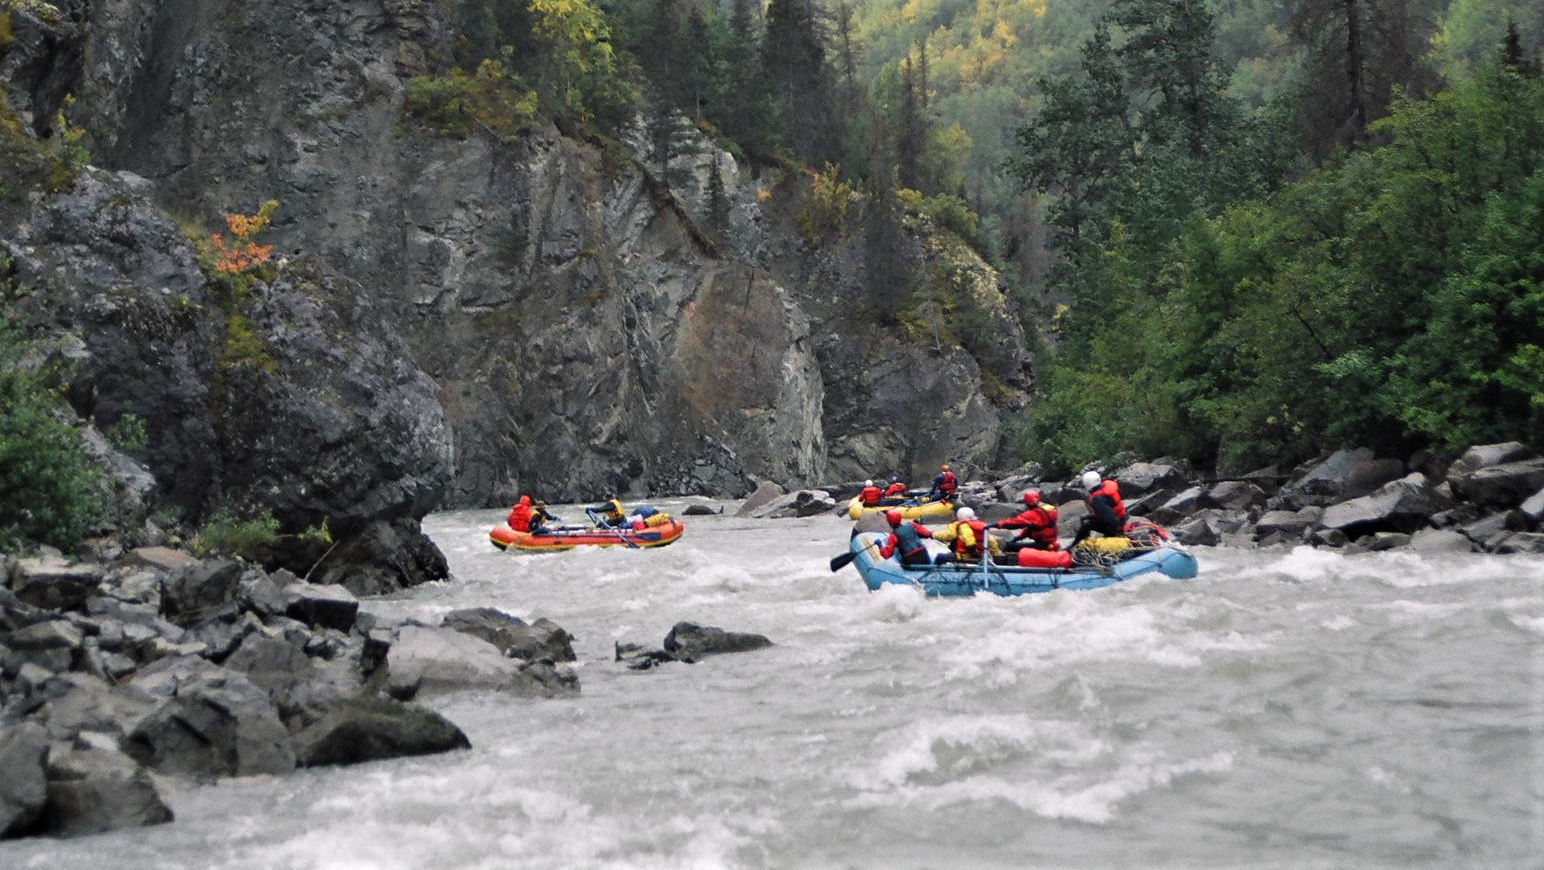 rafts navigating through whitewater conditions